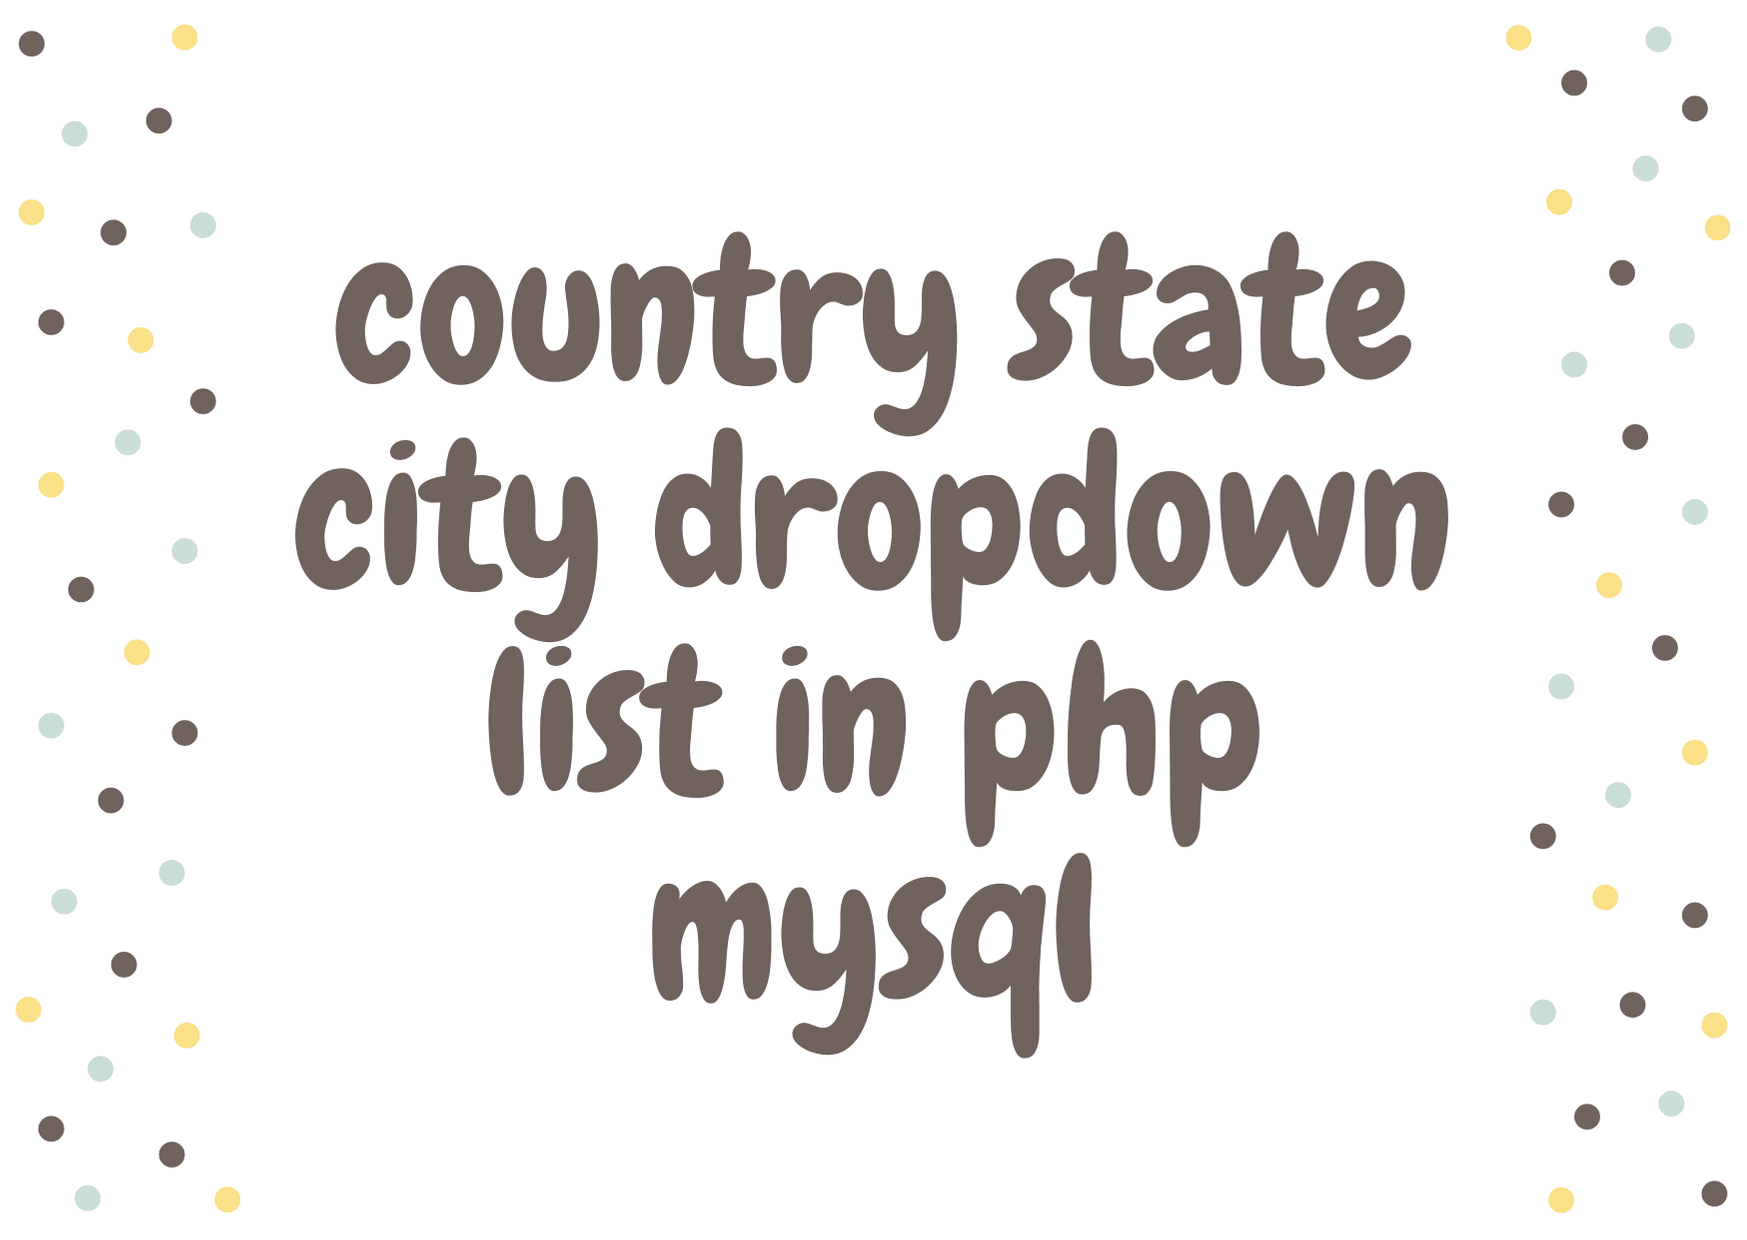 country state city dropdown list in php